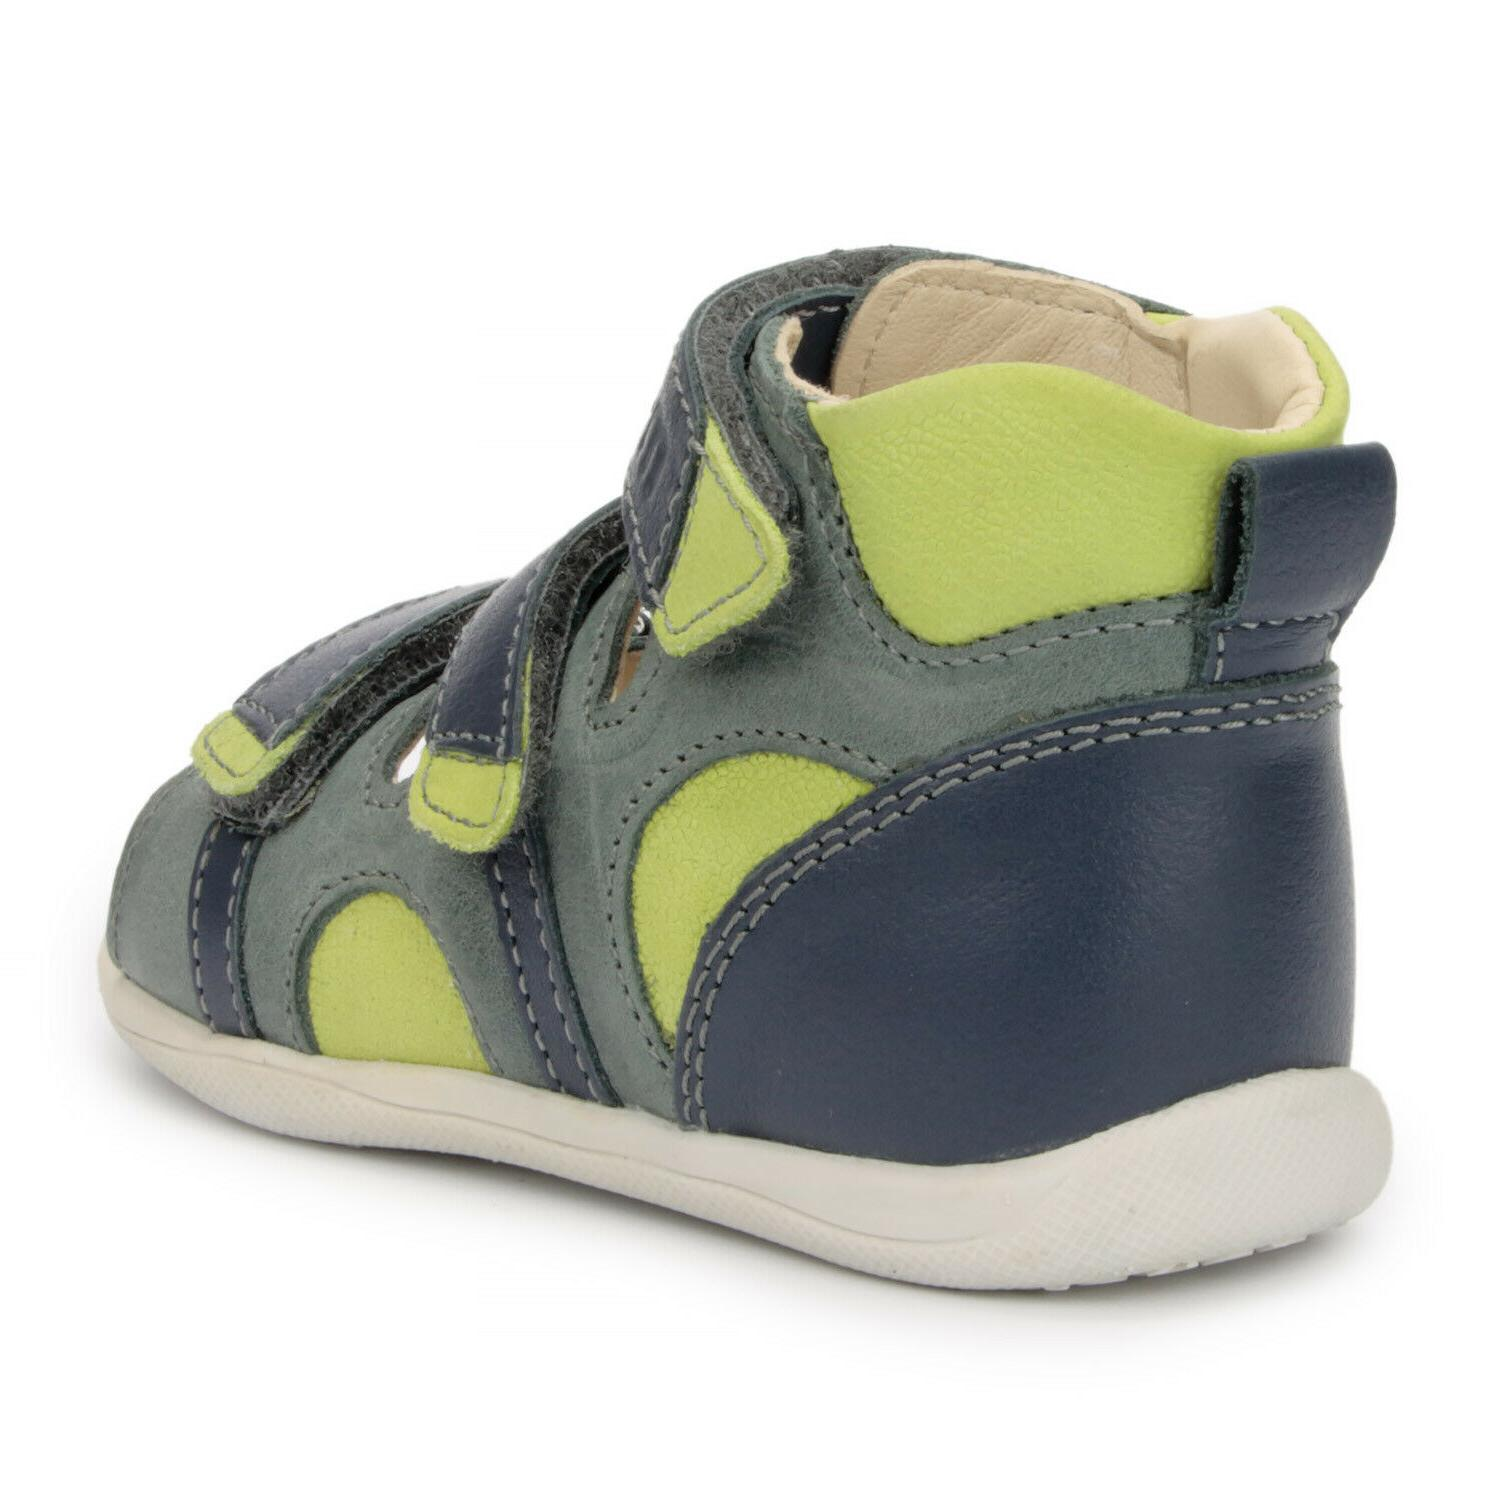 Memo First Orthopedic Ankle Support Sandals,